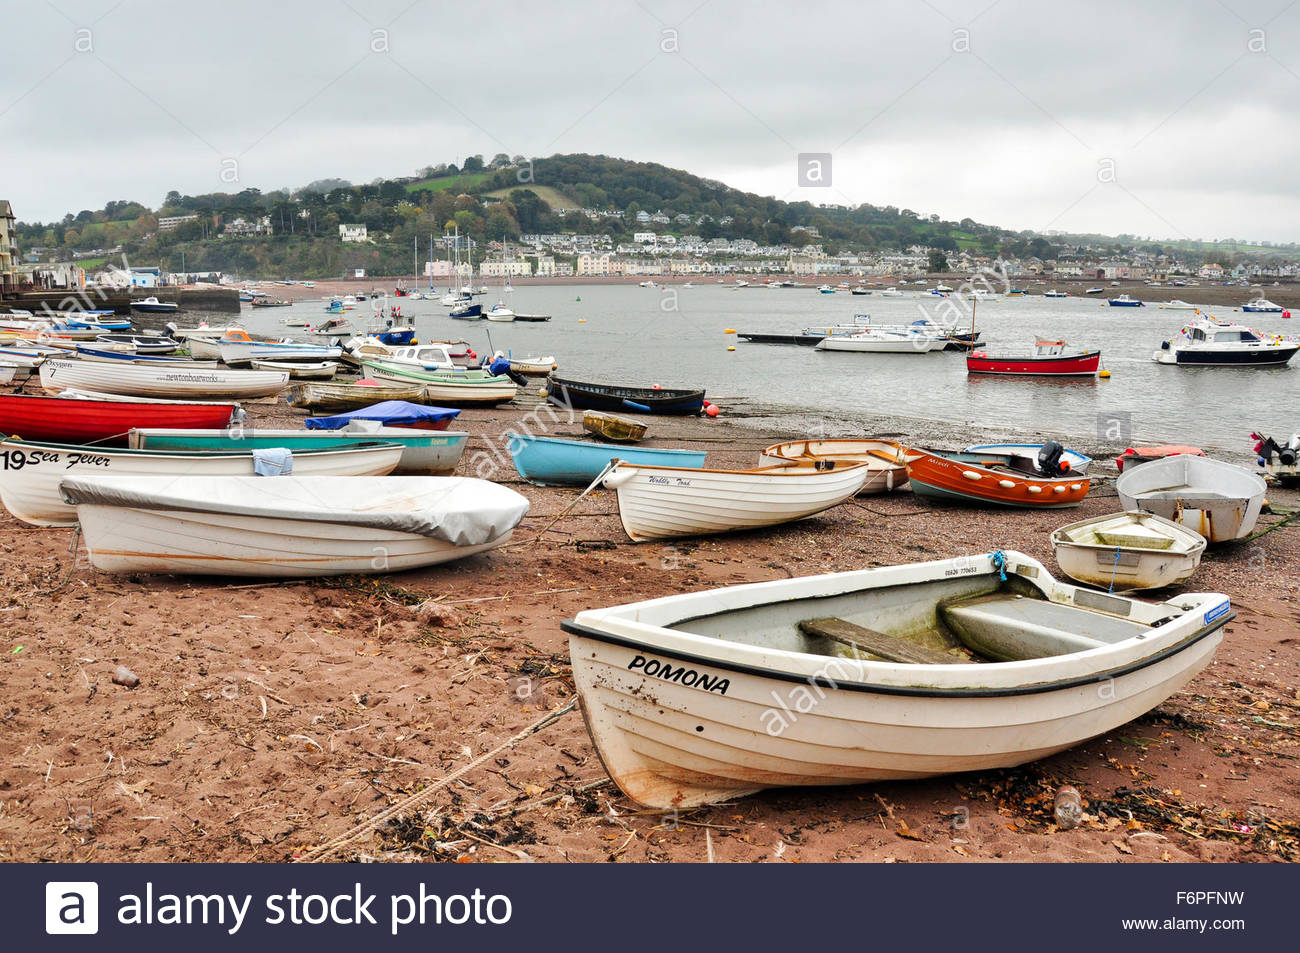 Boats on the beach at Teignmouth in Devon, with Shaldon viewed in the background Stock Photo